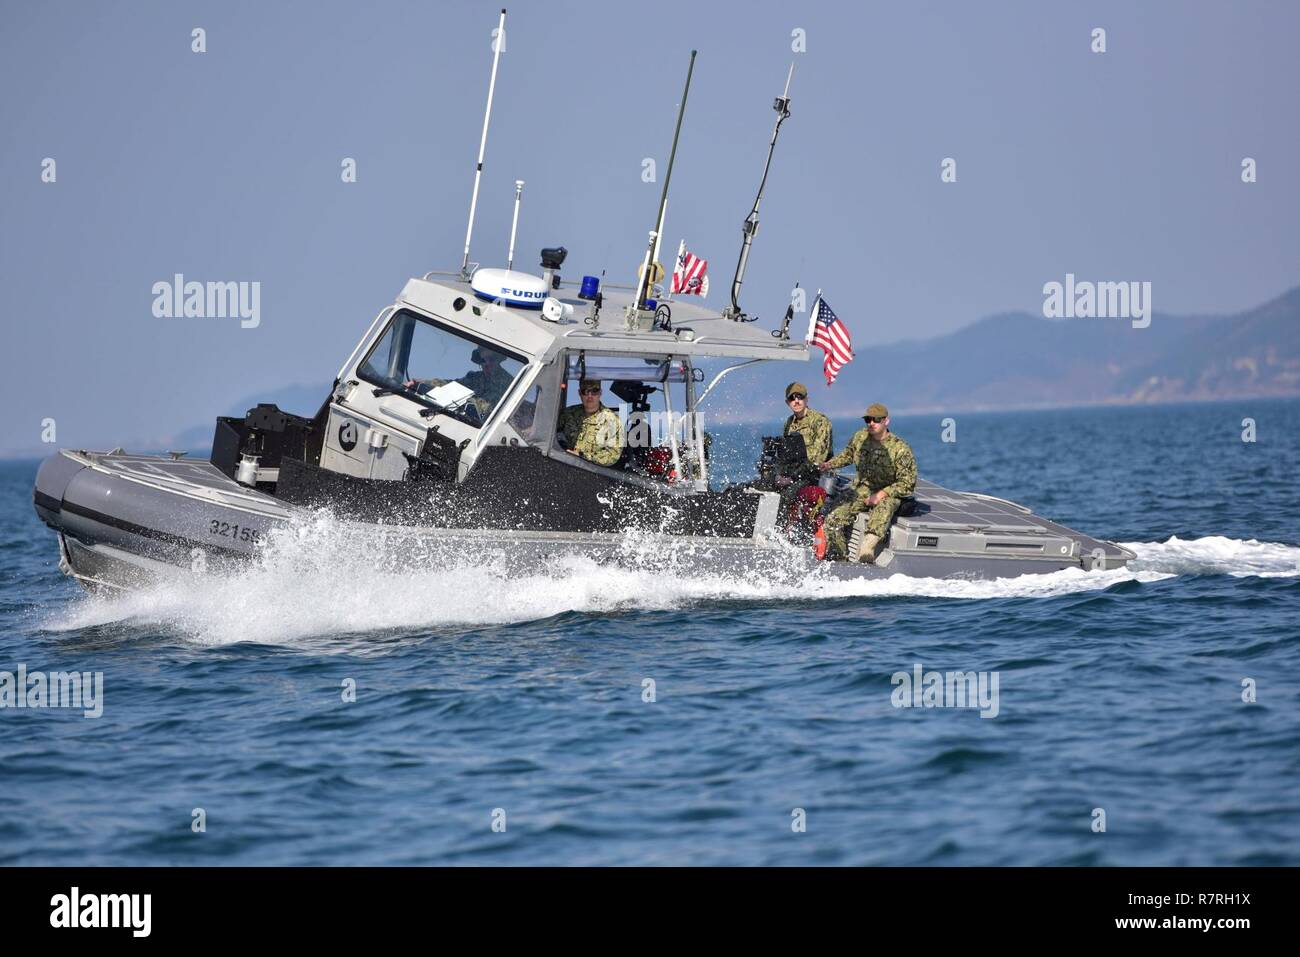 U.S. Coast Guardsmen assigned to Coast Guard Port Security Unit 312 conduct an underway area familiarization patrol aboard a 32-foot transportable port security boat during Operation Pacific Reach Exercise 2017 (OPRex17) in Pohang, South Korea, April 2, 2017. OPRex17 is a bilateral training event designed to ensure readiness and sustain the capabilities which strengthen ROK-U.S. Alliance. Stock Photo